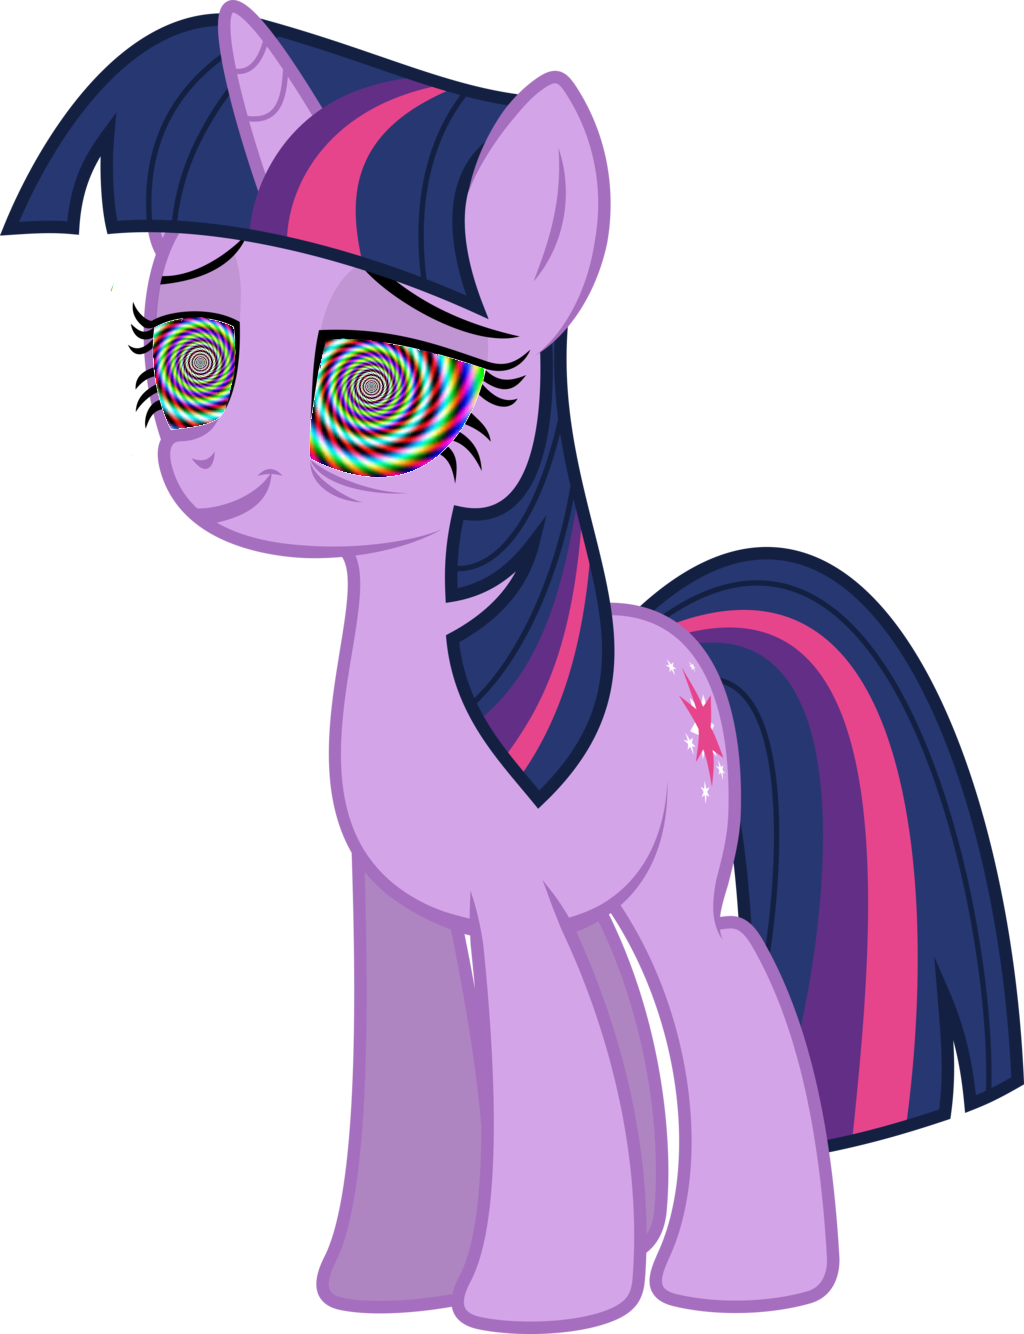 223698__safe_twilight+sparkle_smiling_hypnosis_eyes_trance.png